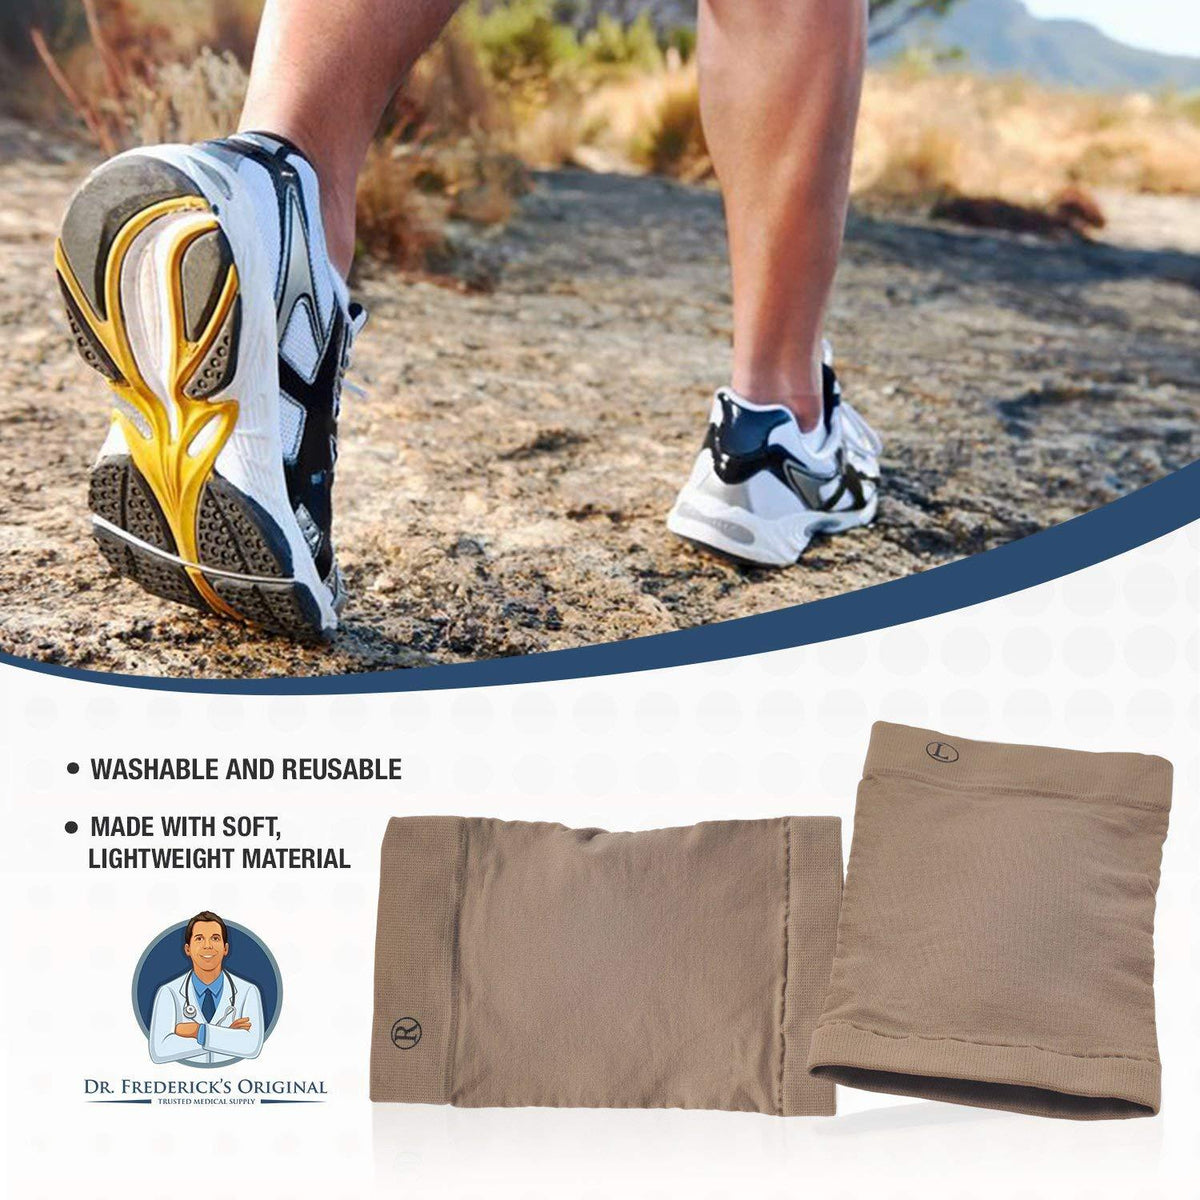 Dr. Frederick's Original Arch Support Sleeve Set -- 2 Pieces -- (W6-10 | M4.5-8) - for Arch Pain, Flat Feet, and Plantar Fasciitis Foot Pain Dr. Frederick's Original